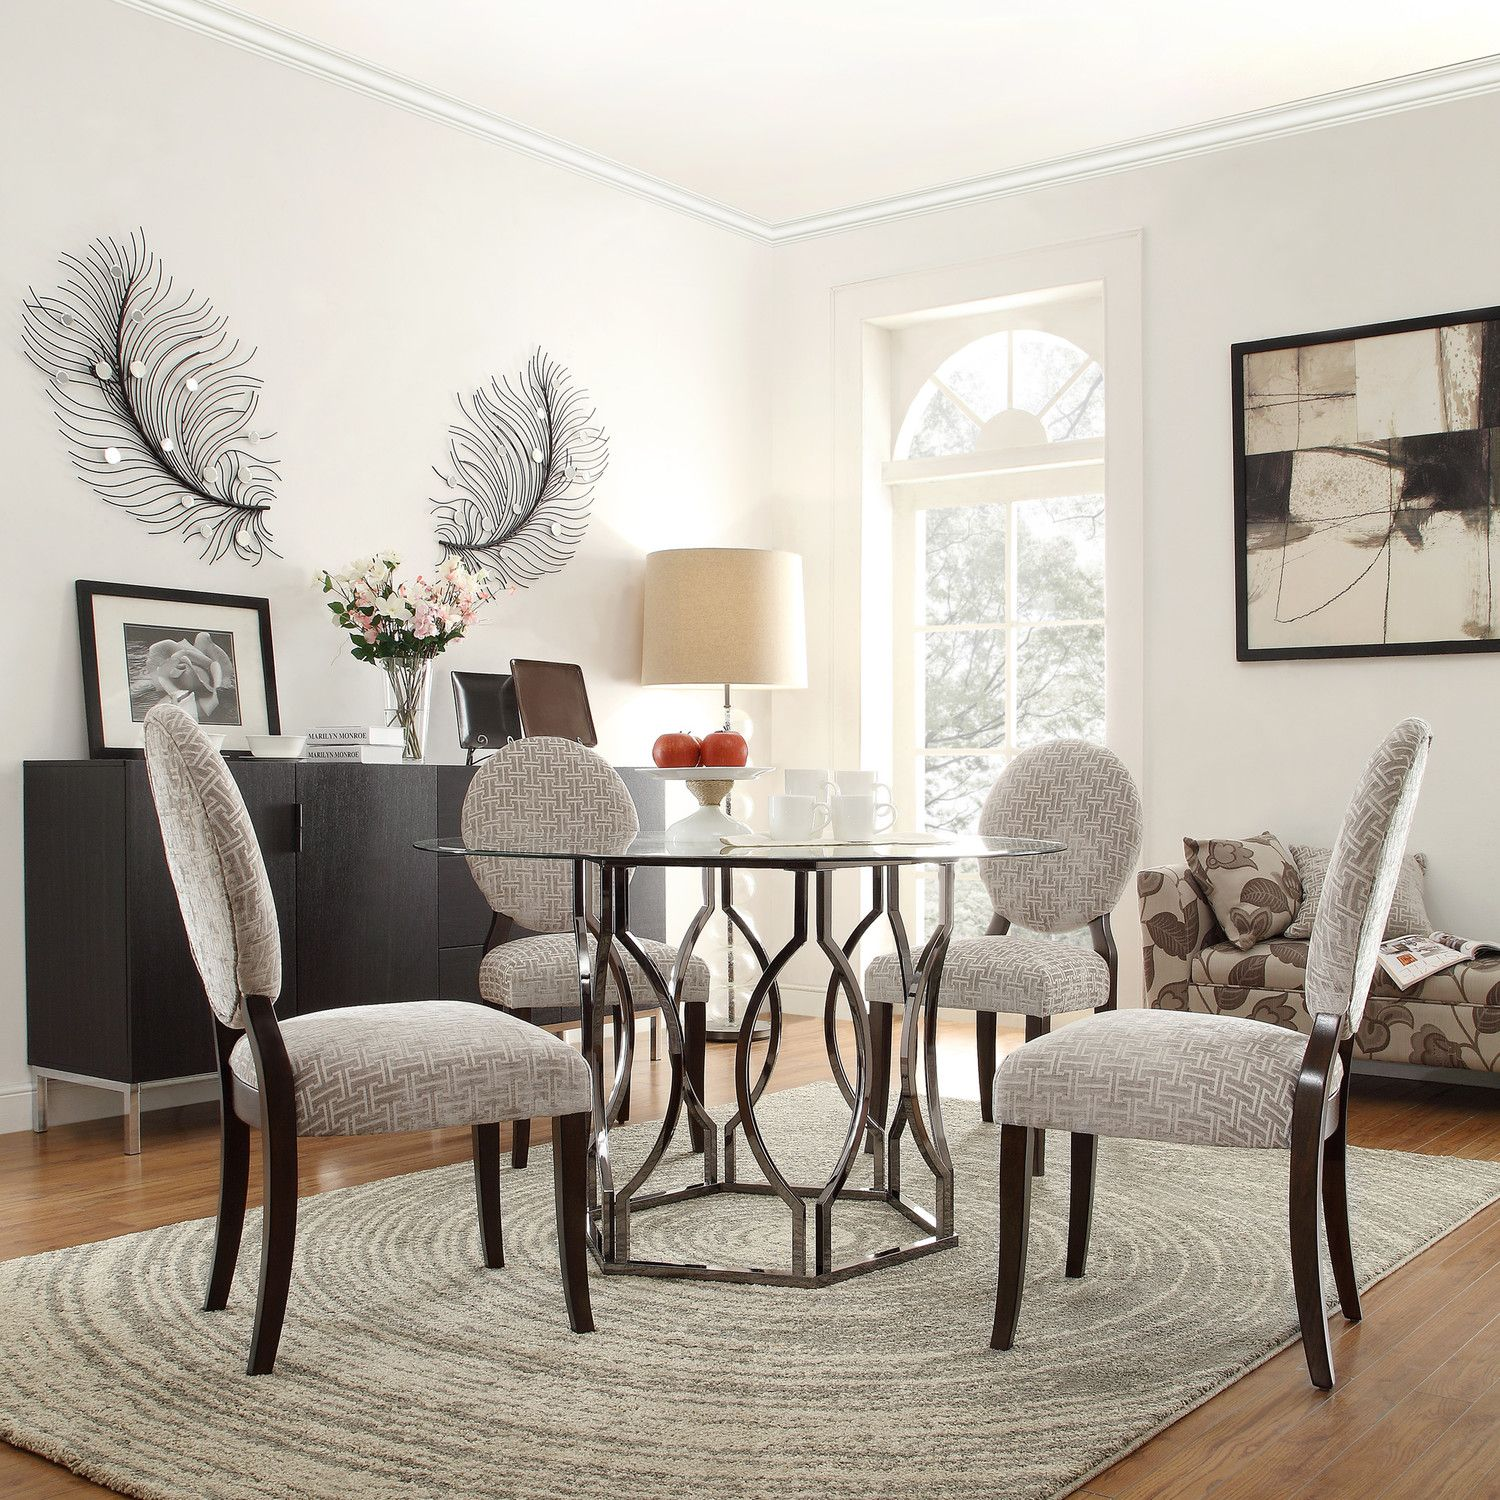 Kingstown Home Carlotta Round Glass Dining Table | For the Home ...